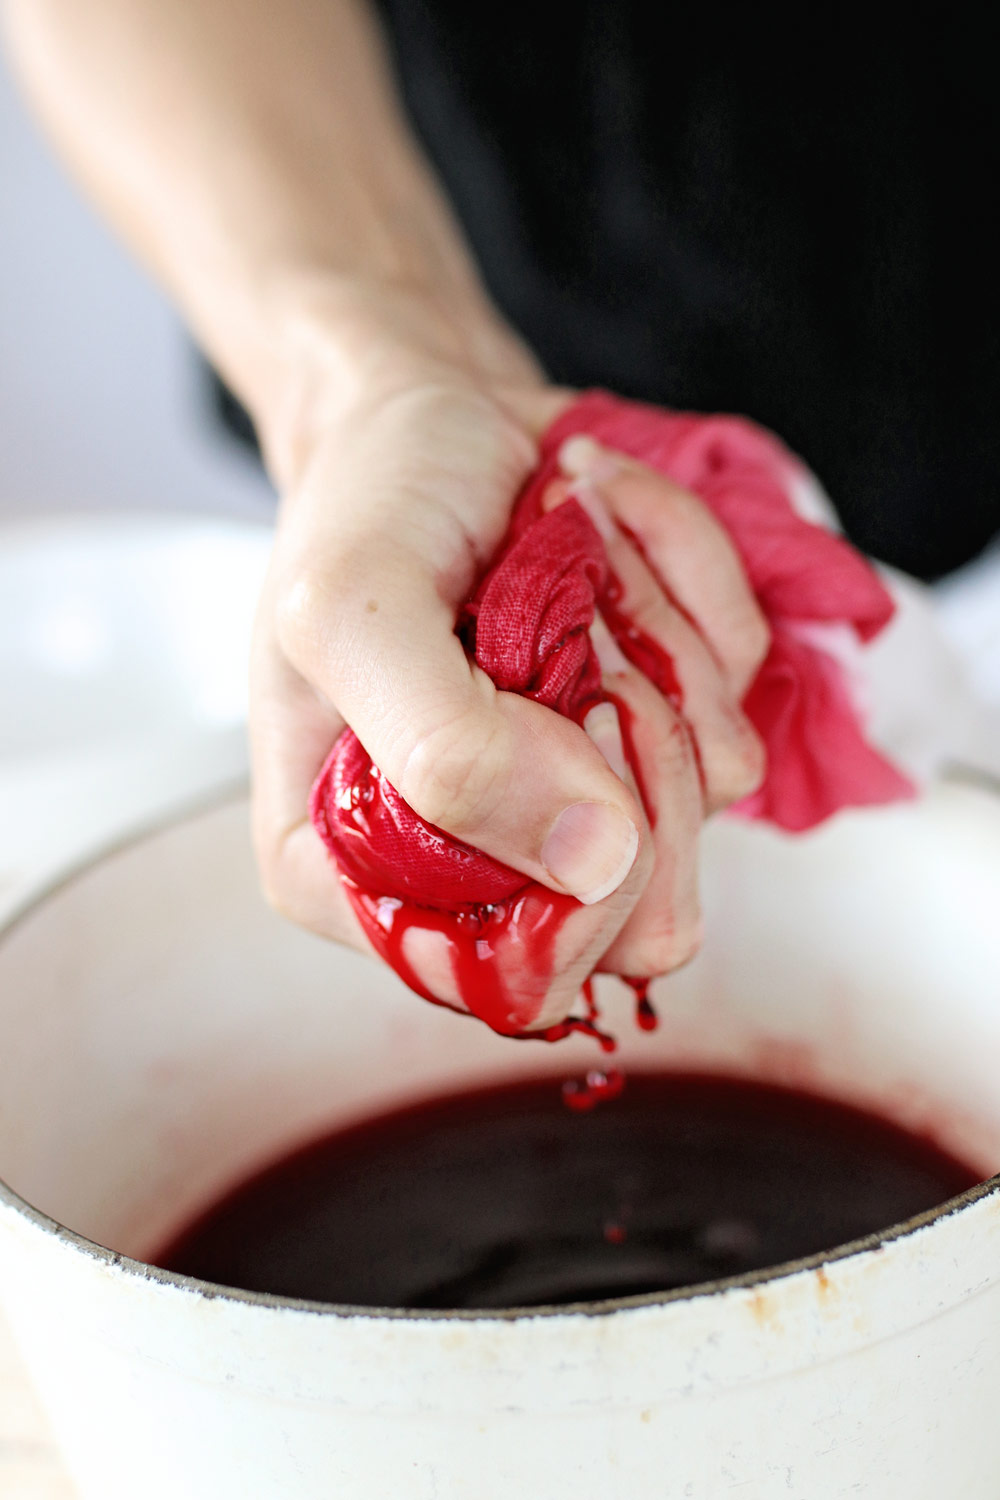 How to Make Beet-Dyed Dishtowels